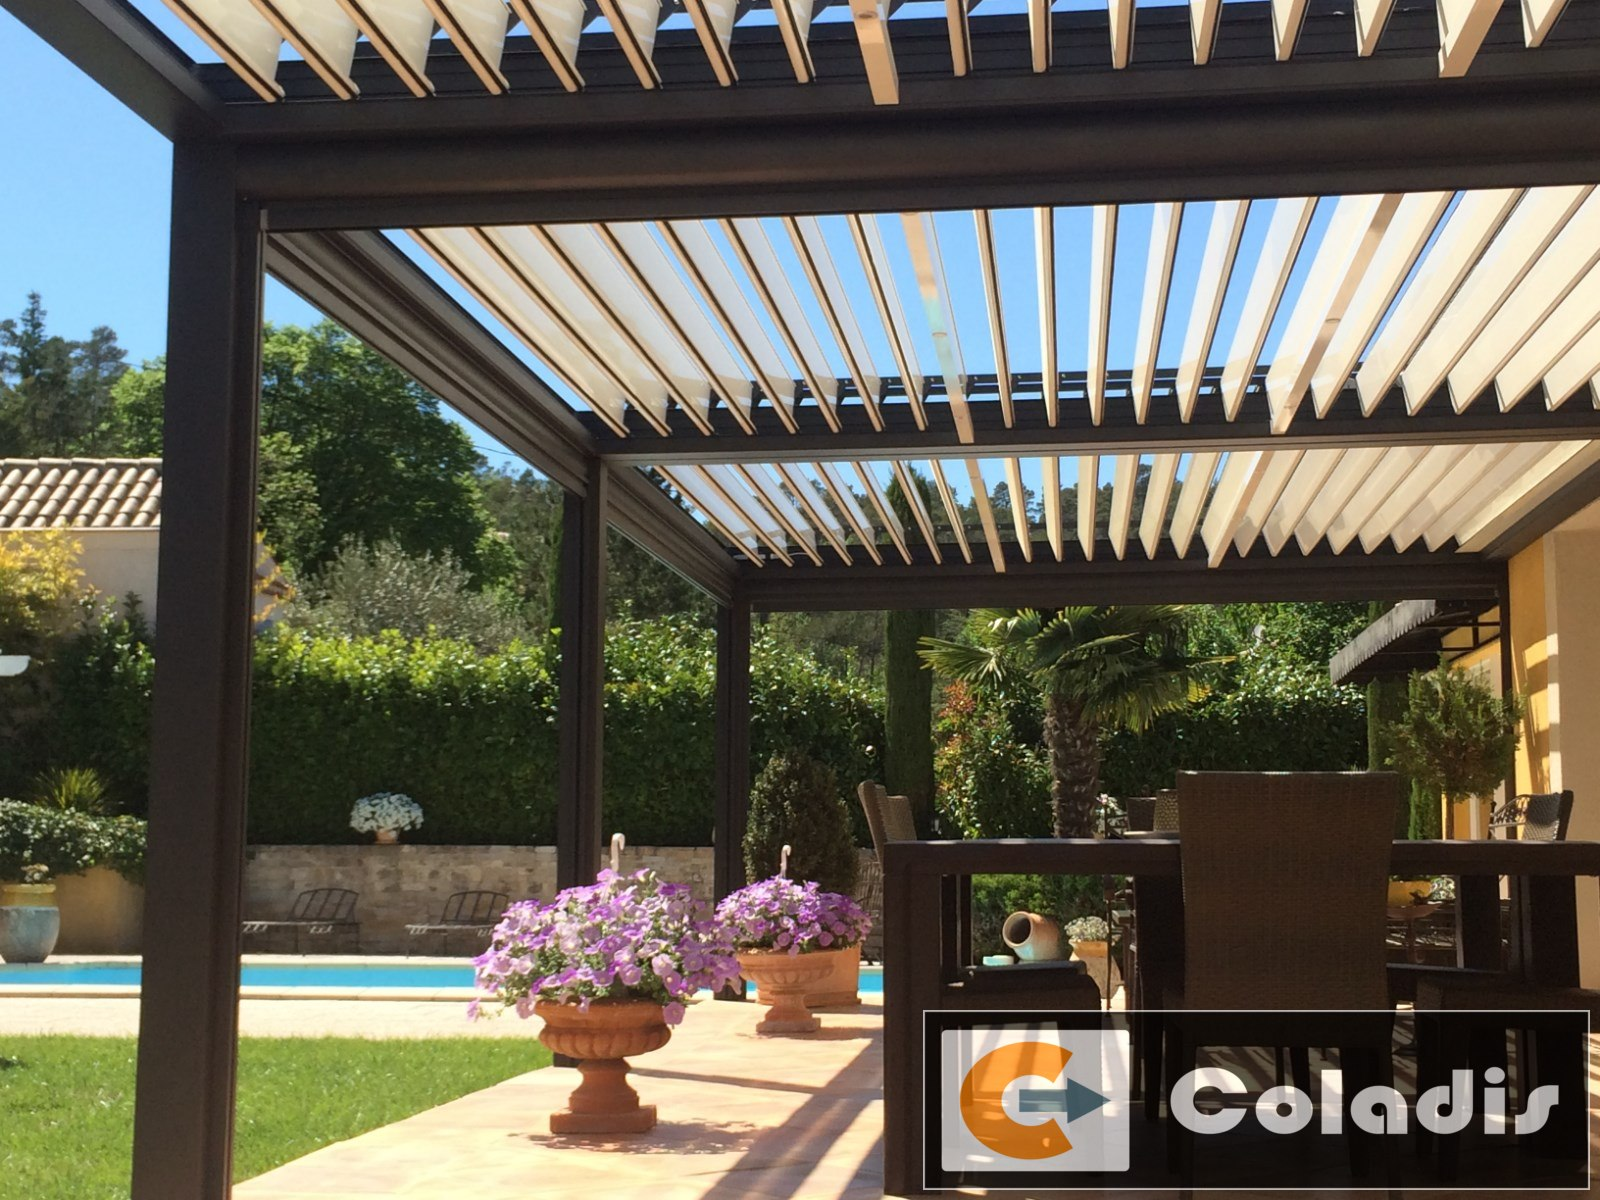 Coladis pergola bioclimatique aluminium gris antique toulon